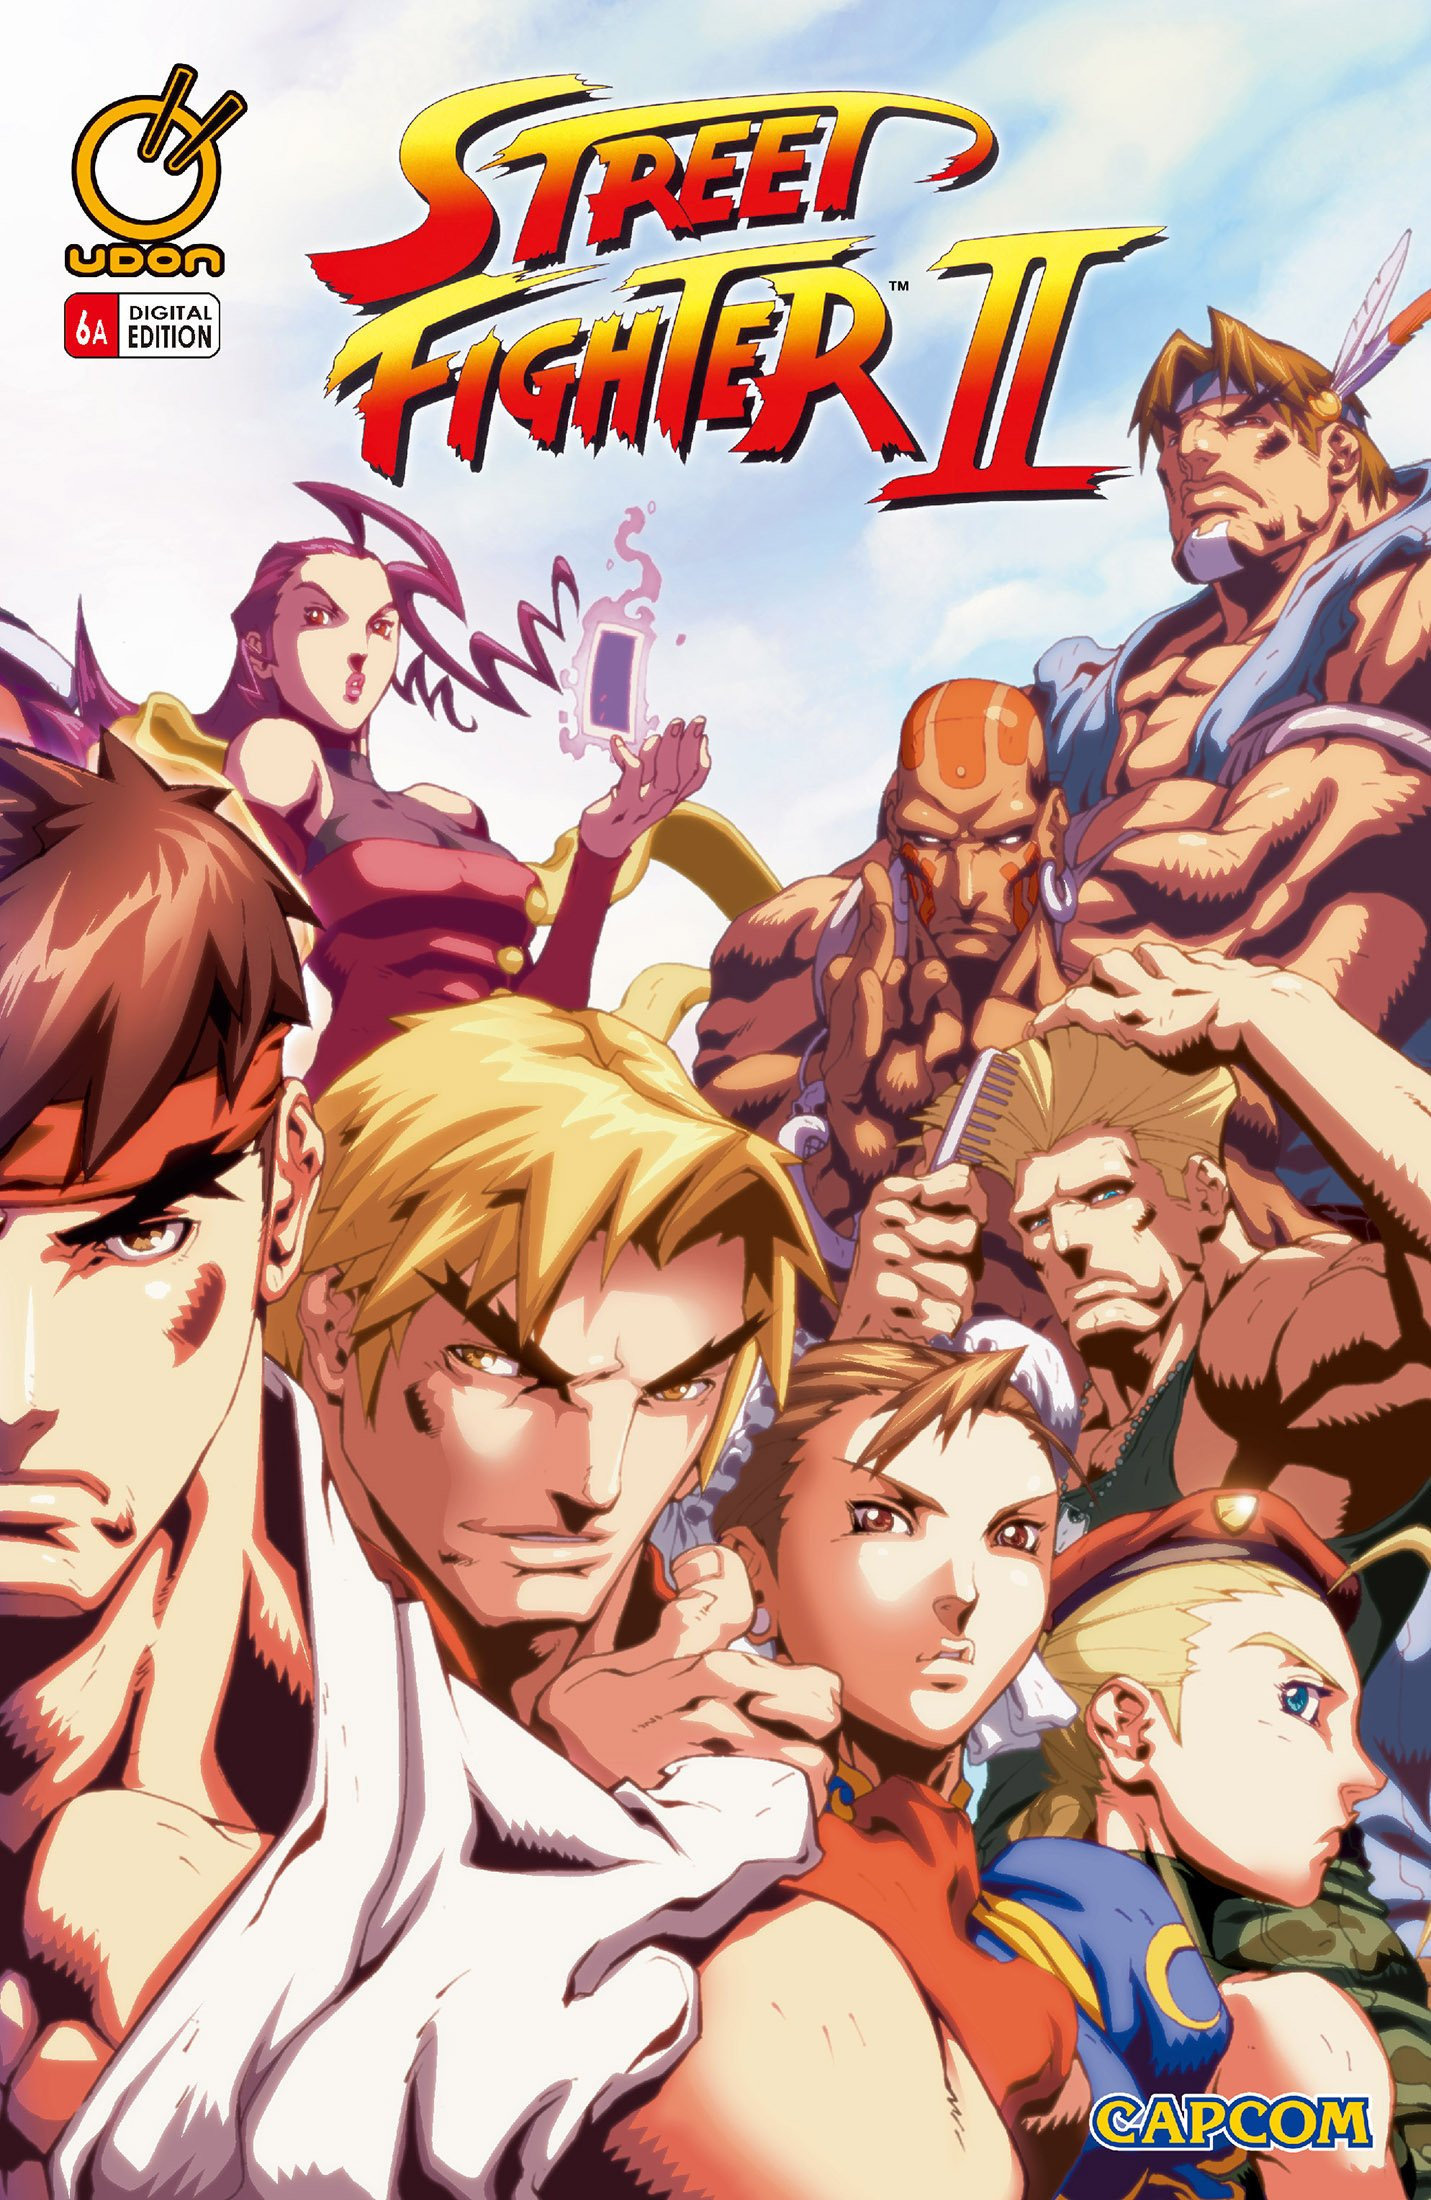 Street Fighter II Issue 6 (November 2006) (cover a)